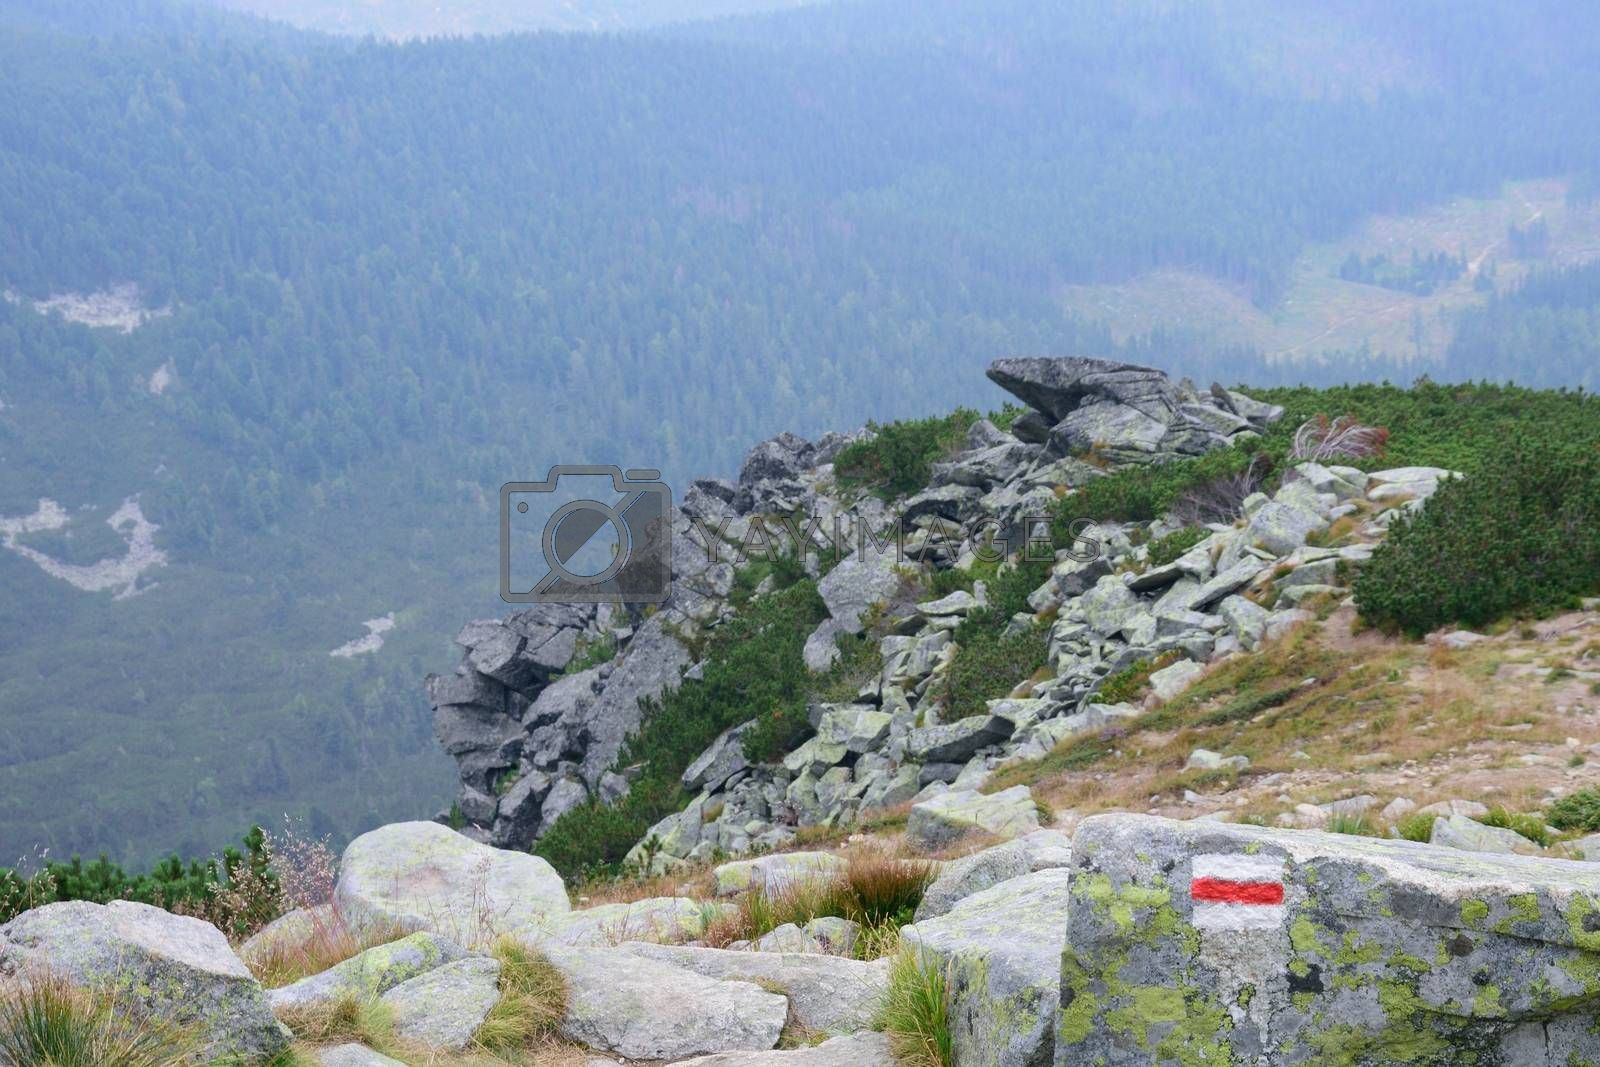 Footpath Marker in Tatra mountains